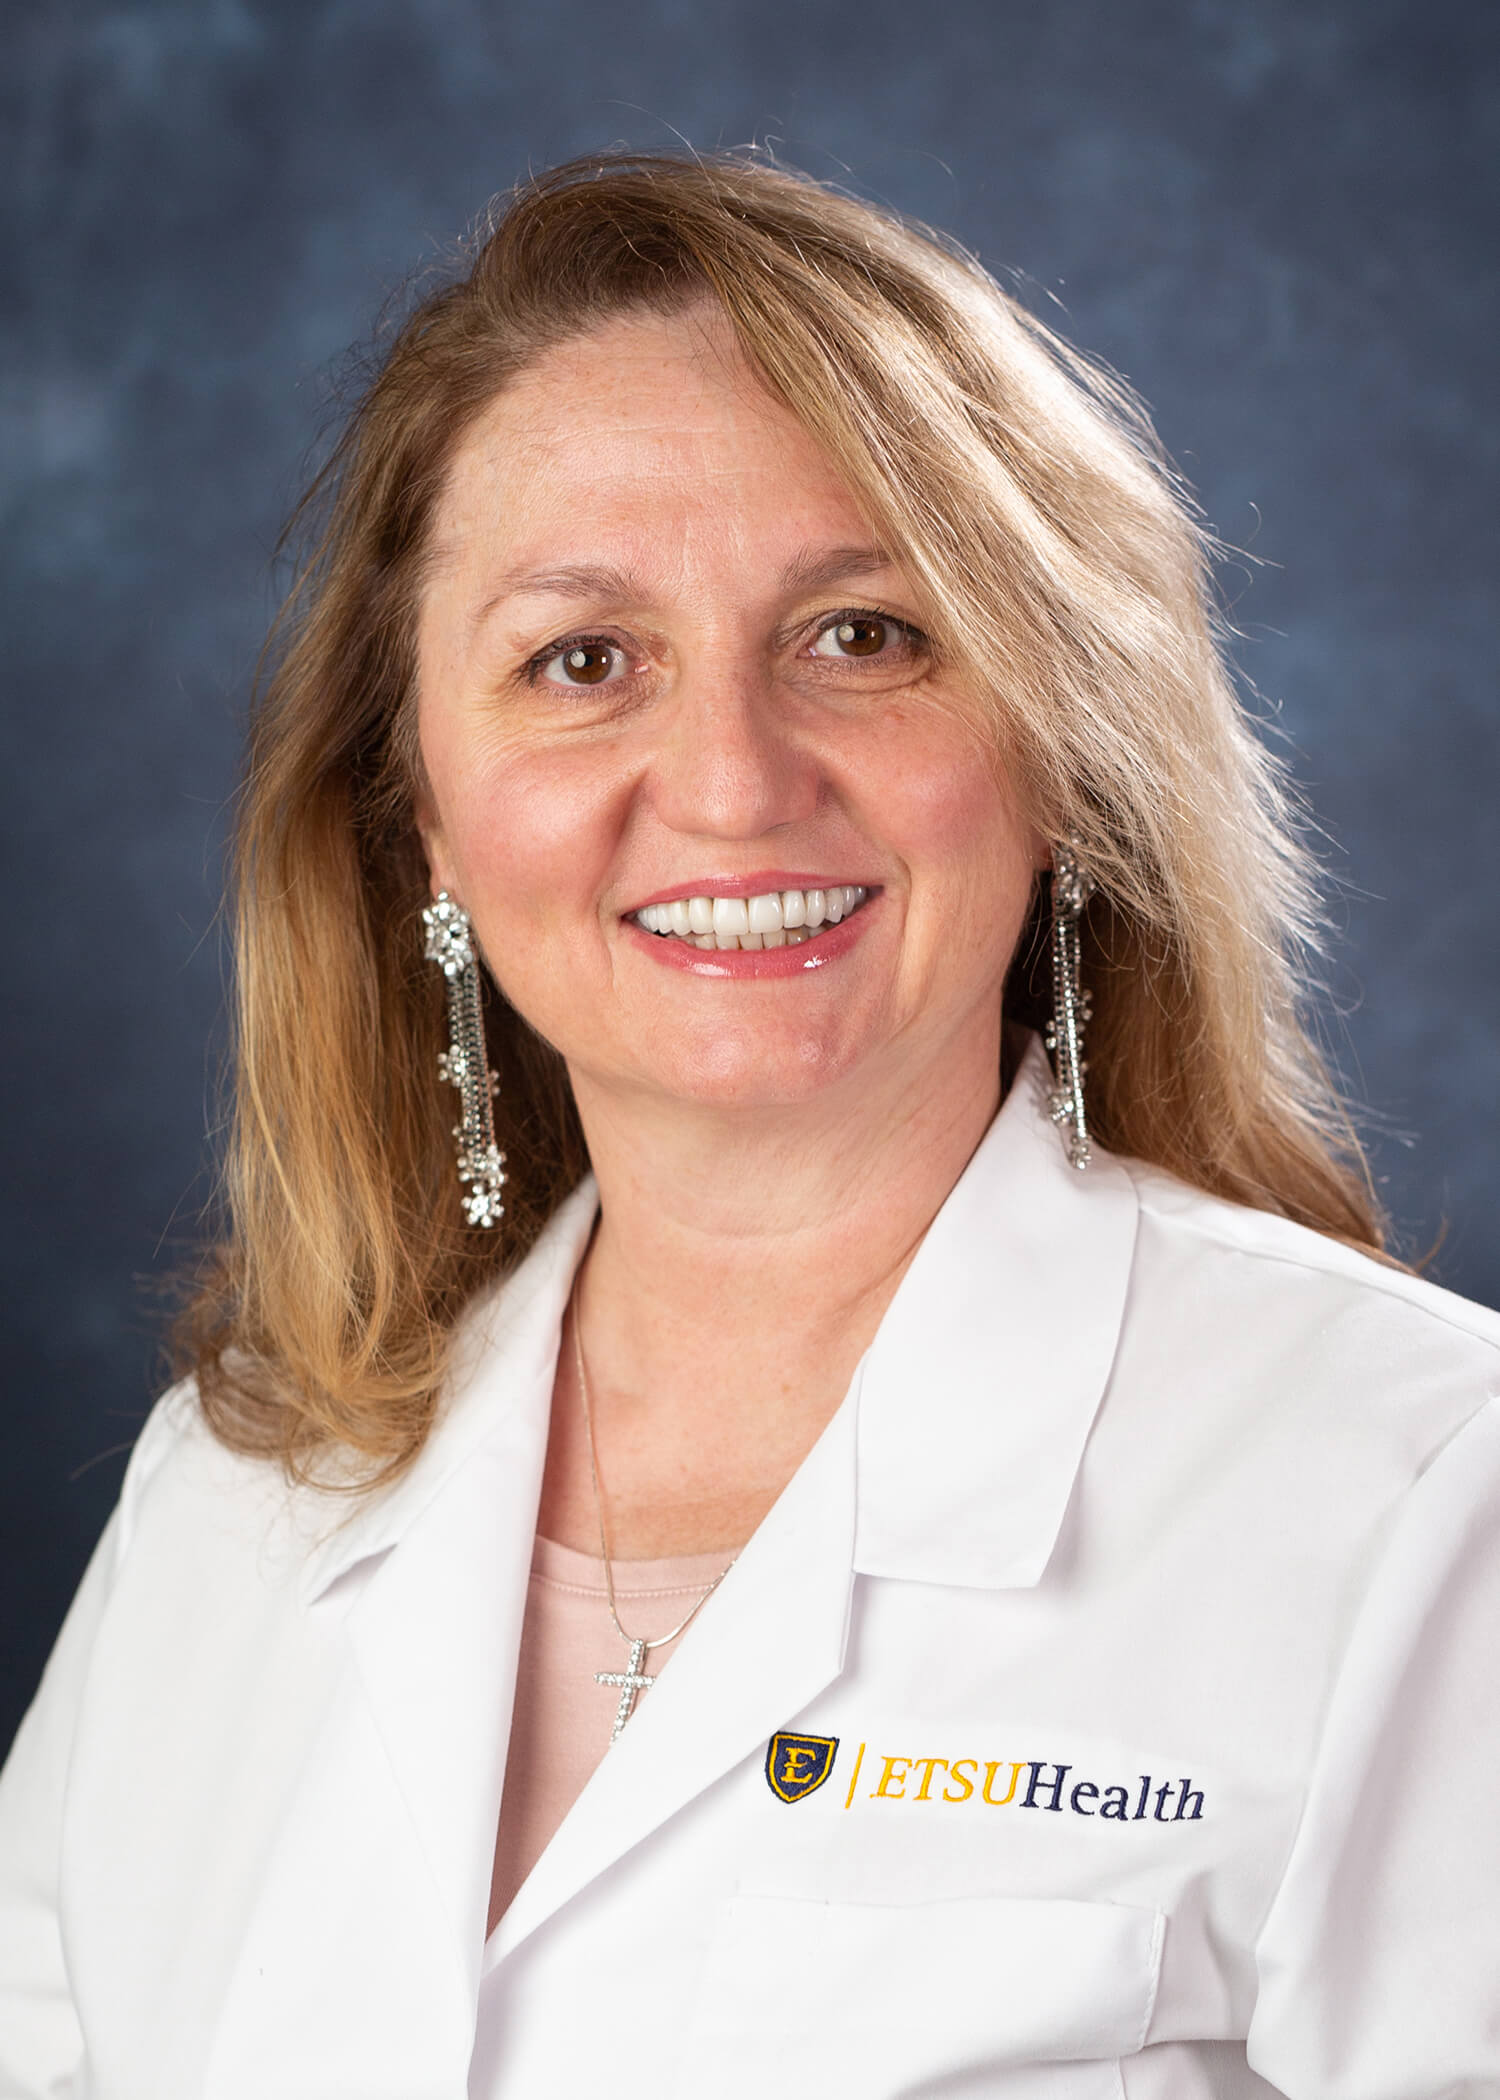 Photo of Melania Bochis, M.D.